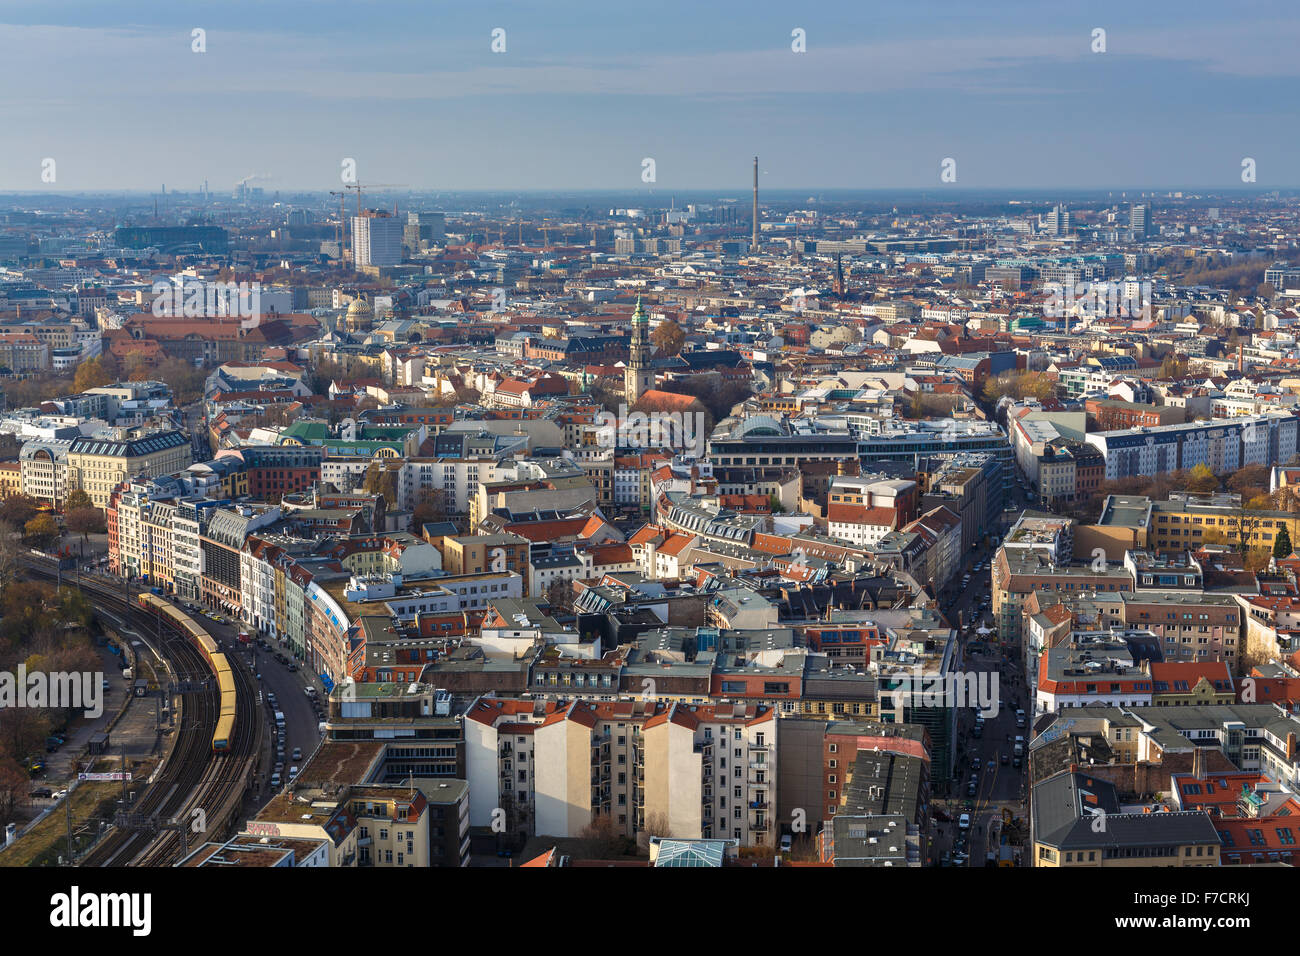 Aerial view of Berlin from Alexanderplatz - Stock Image